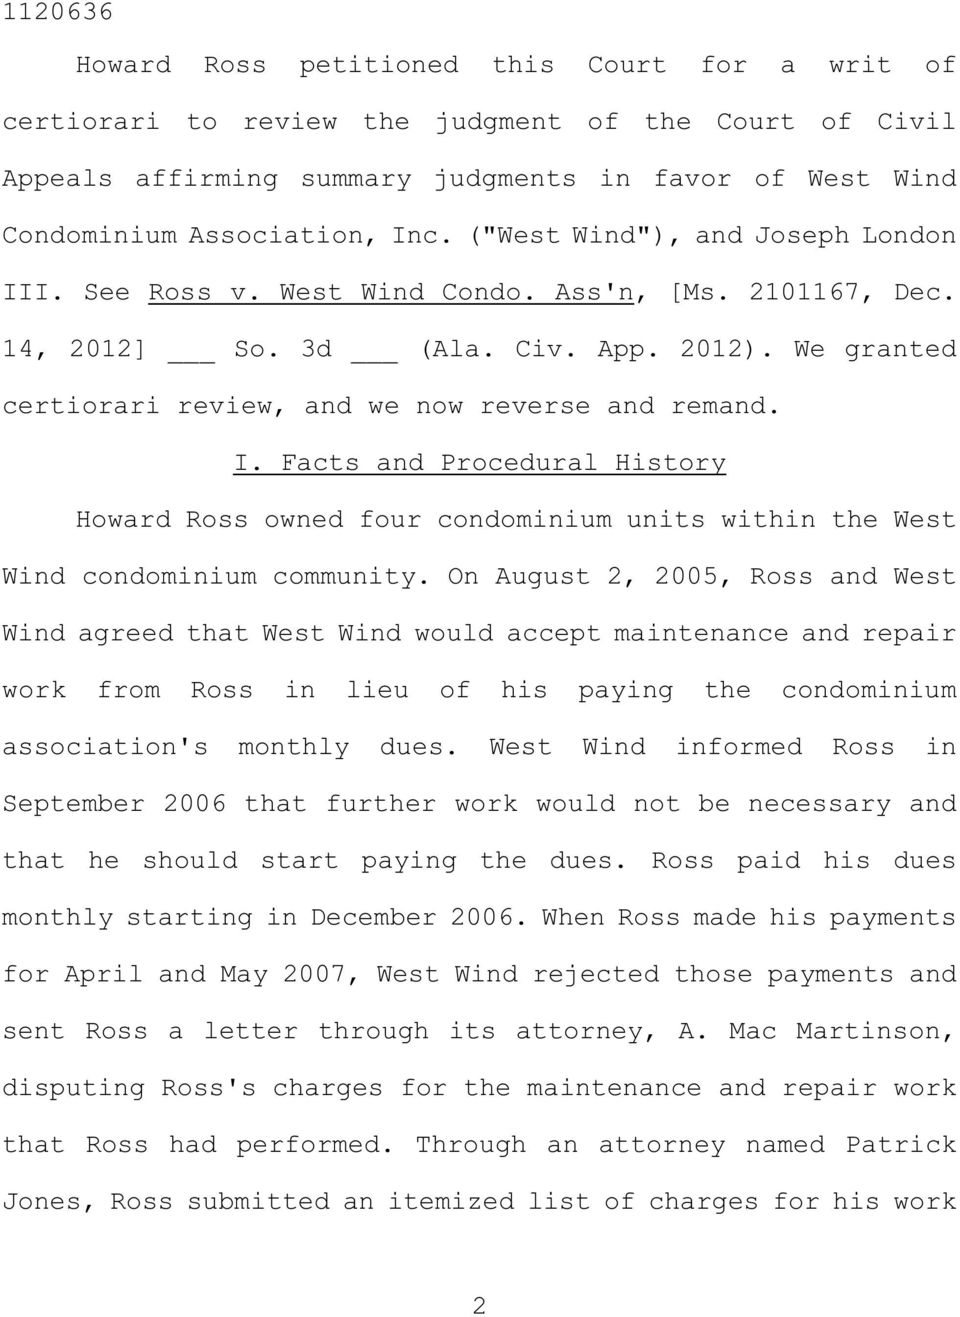 On August 2, 2005, Ross and West Wind agreed that West Wind would accept maintenance and repair work from Ross in lieu of his paying the condominium association's monthly dues.